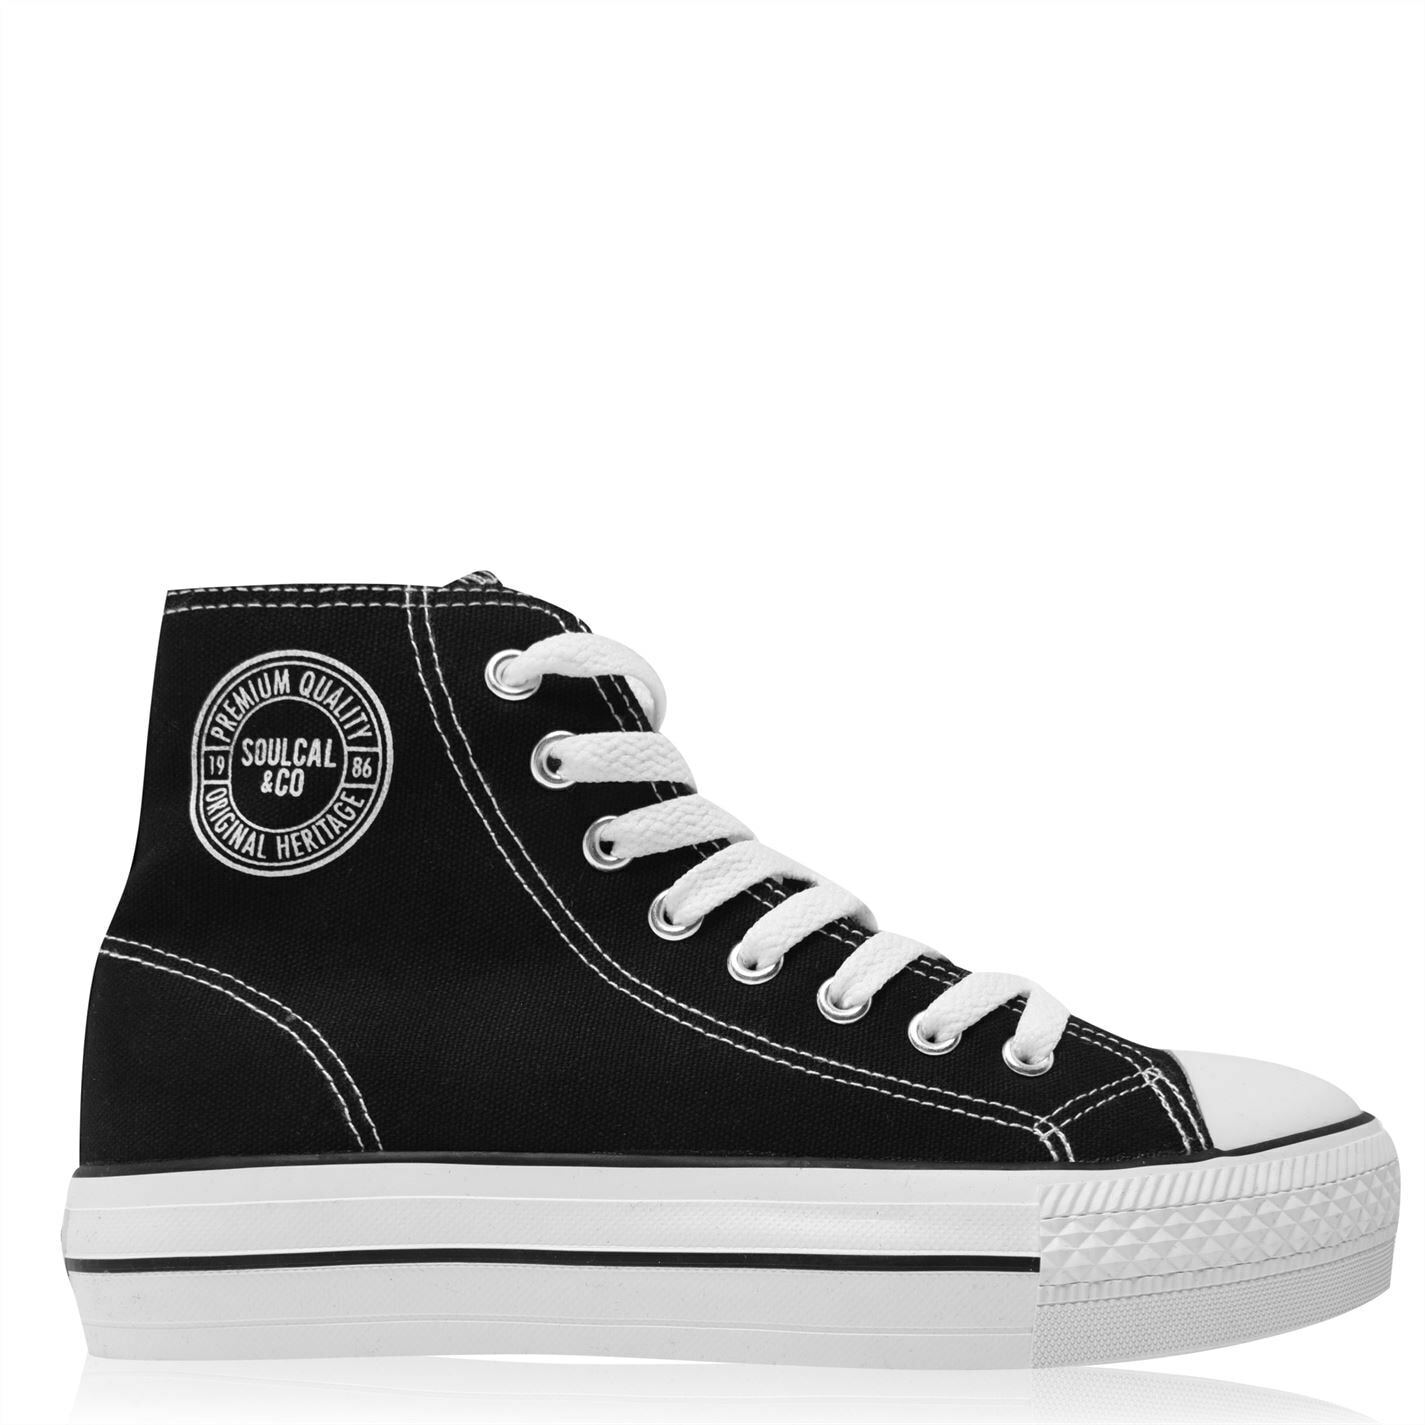 SoulCal Womens Canvas High Top Trainers Lace Up Hi Casual